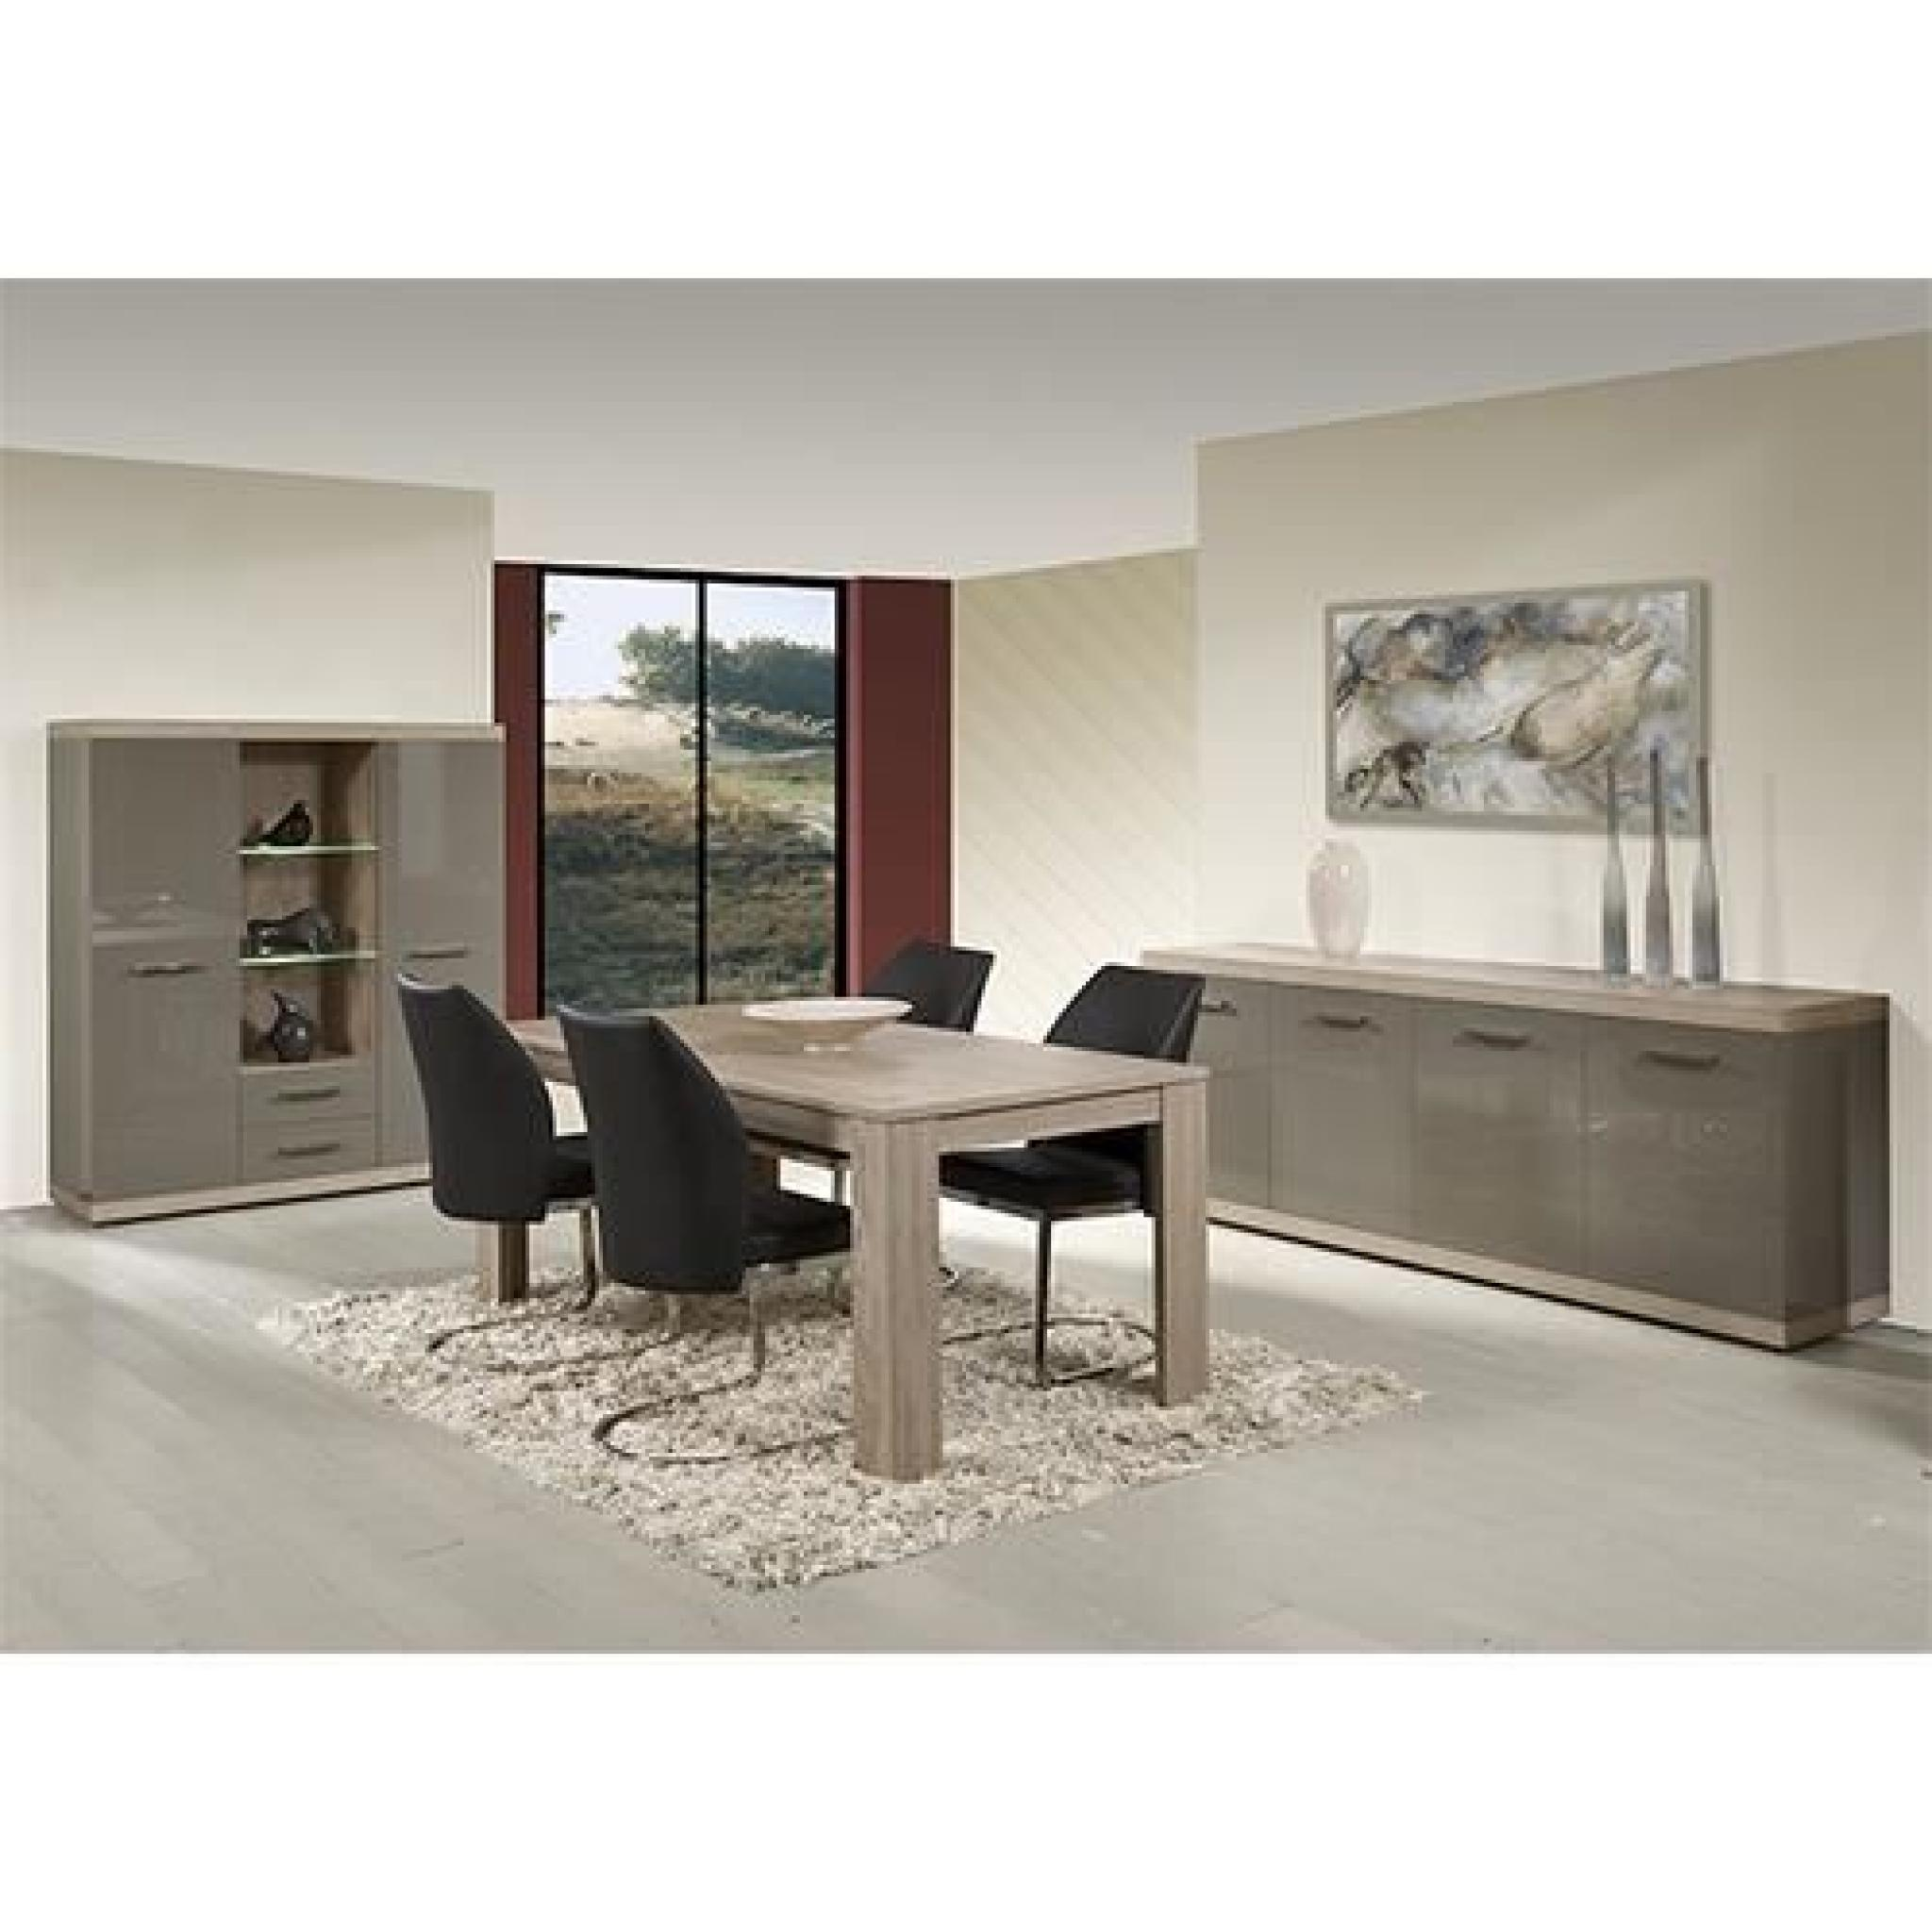 salle manger compl te gris laqu et couleur ch ne clair moderne solly table 160 cm avec. Black Bedroom Furniture Sets. Home Design Ideas